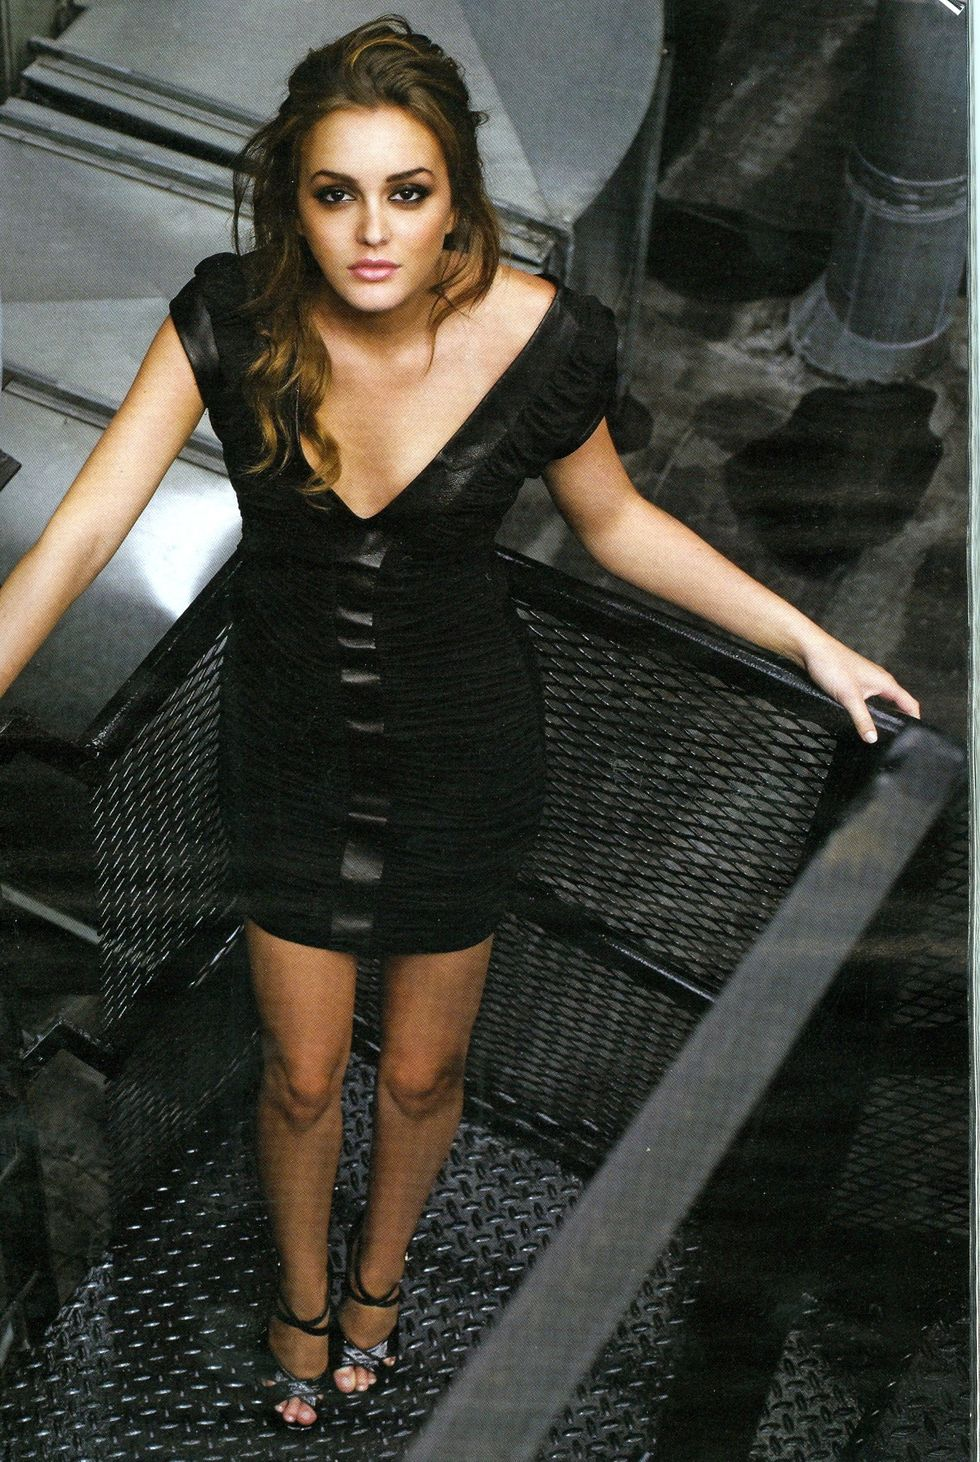 leighton-meester-gotham-magazine-september-2008-01